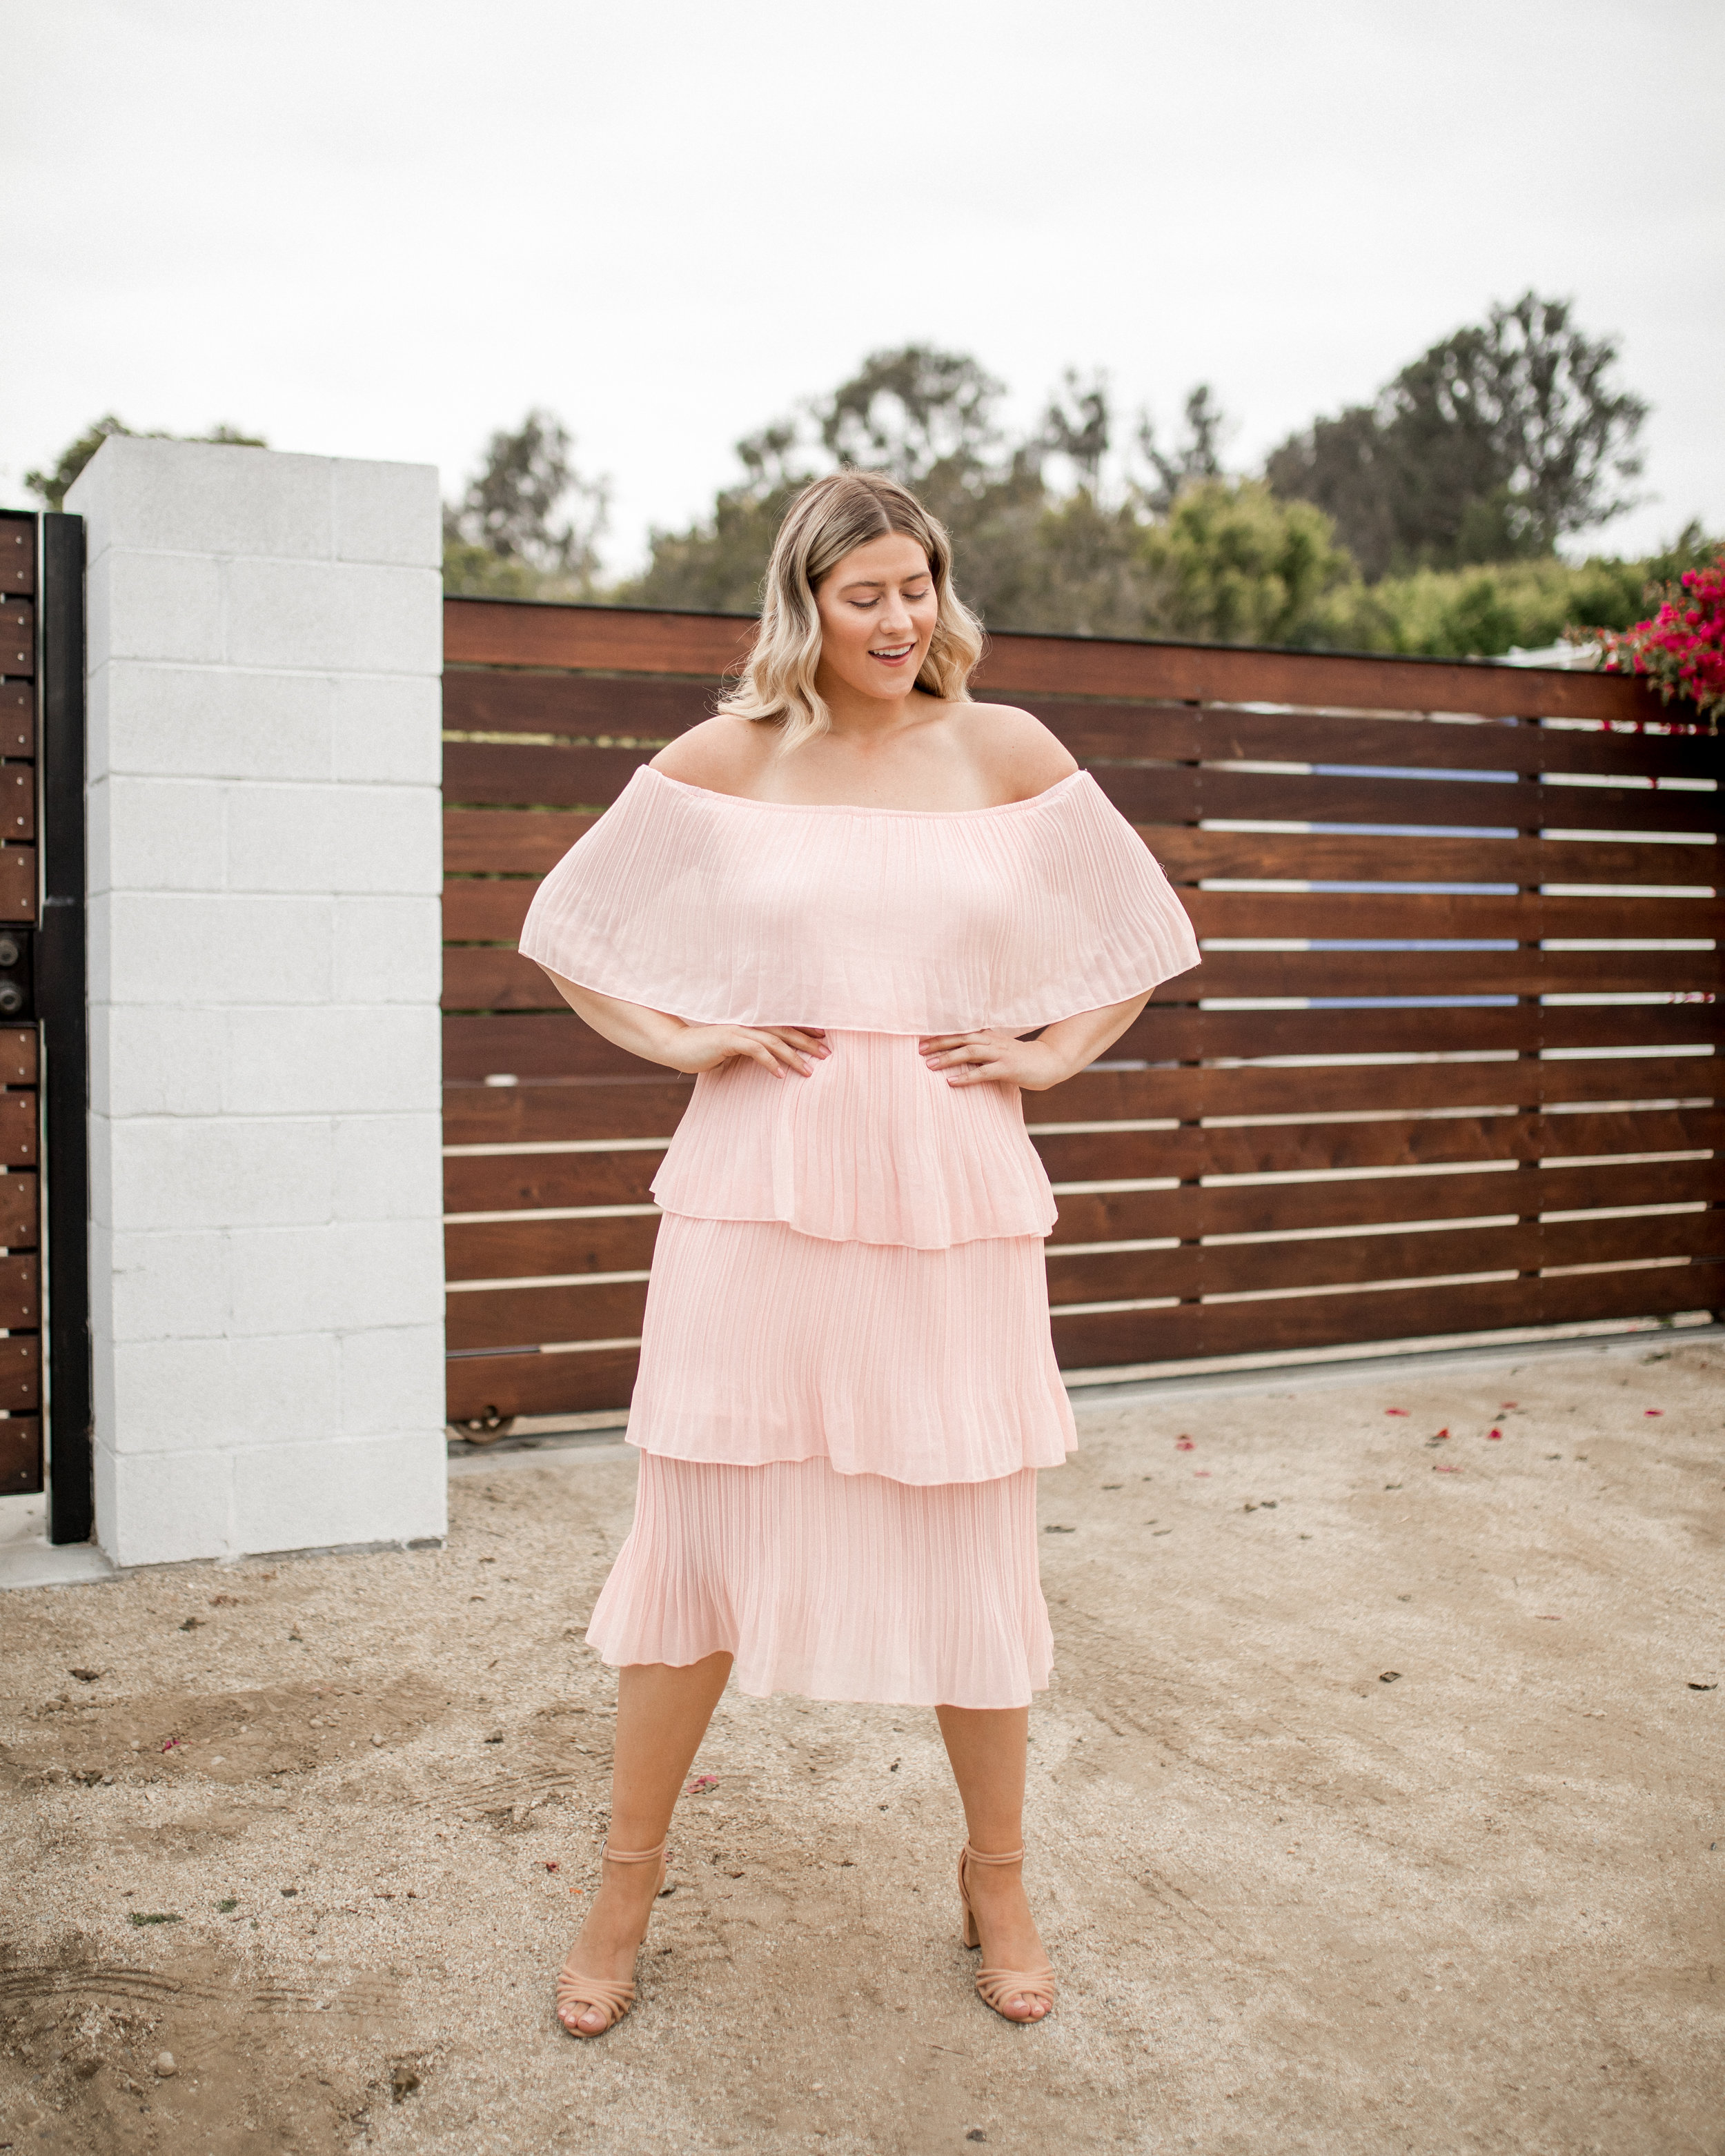 what-to-wear-to-a-wedding-4.jpg